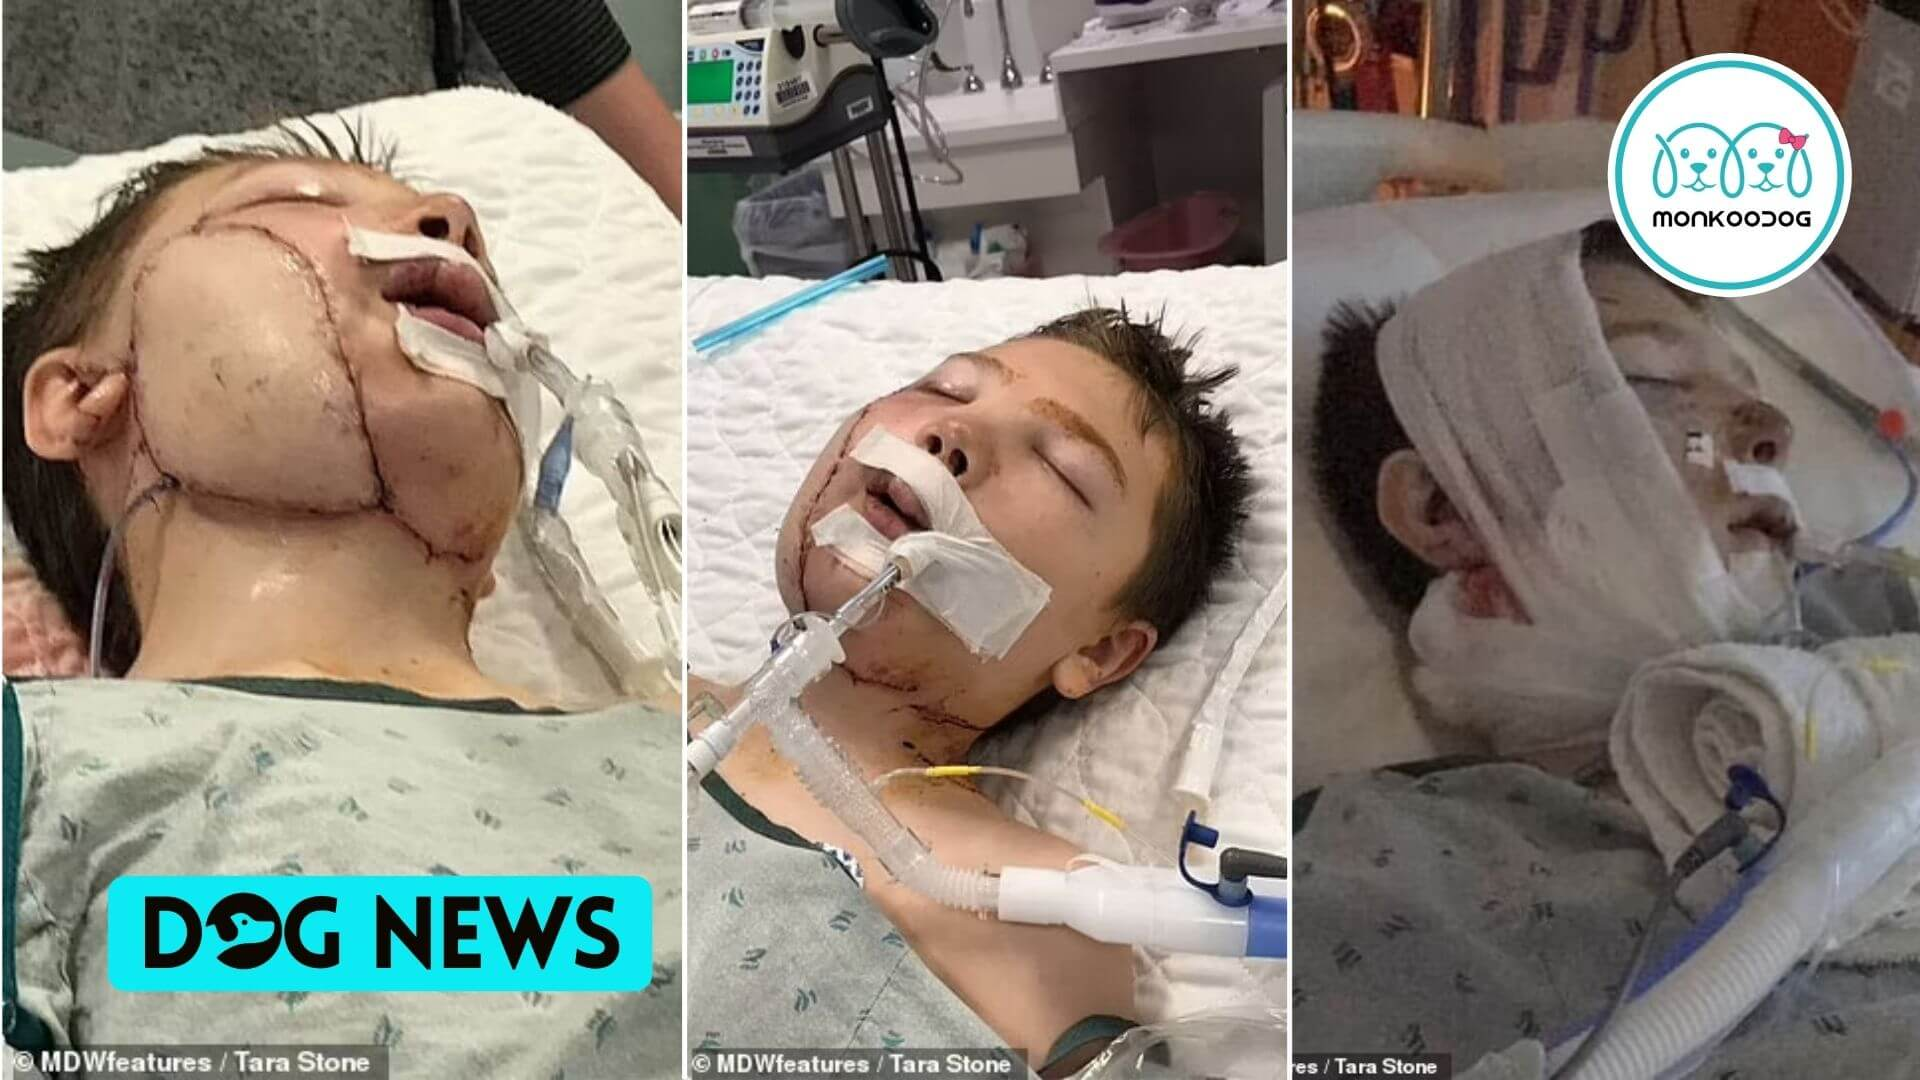 A 13-year-old boy got attacked by a neighbor's pitbull, leaving the jaw, throat, arteries, and voice box exposed with face muscles hanging